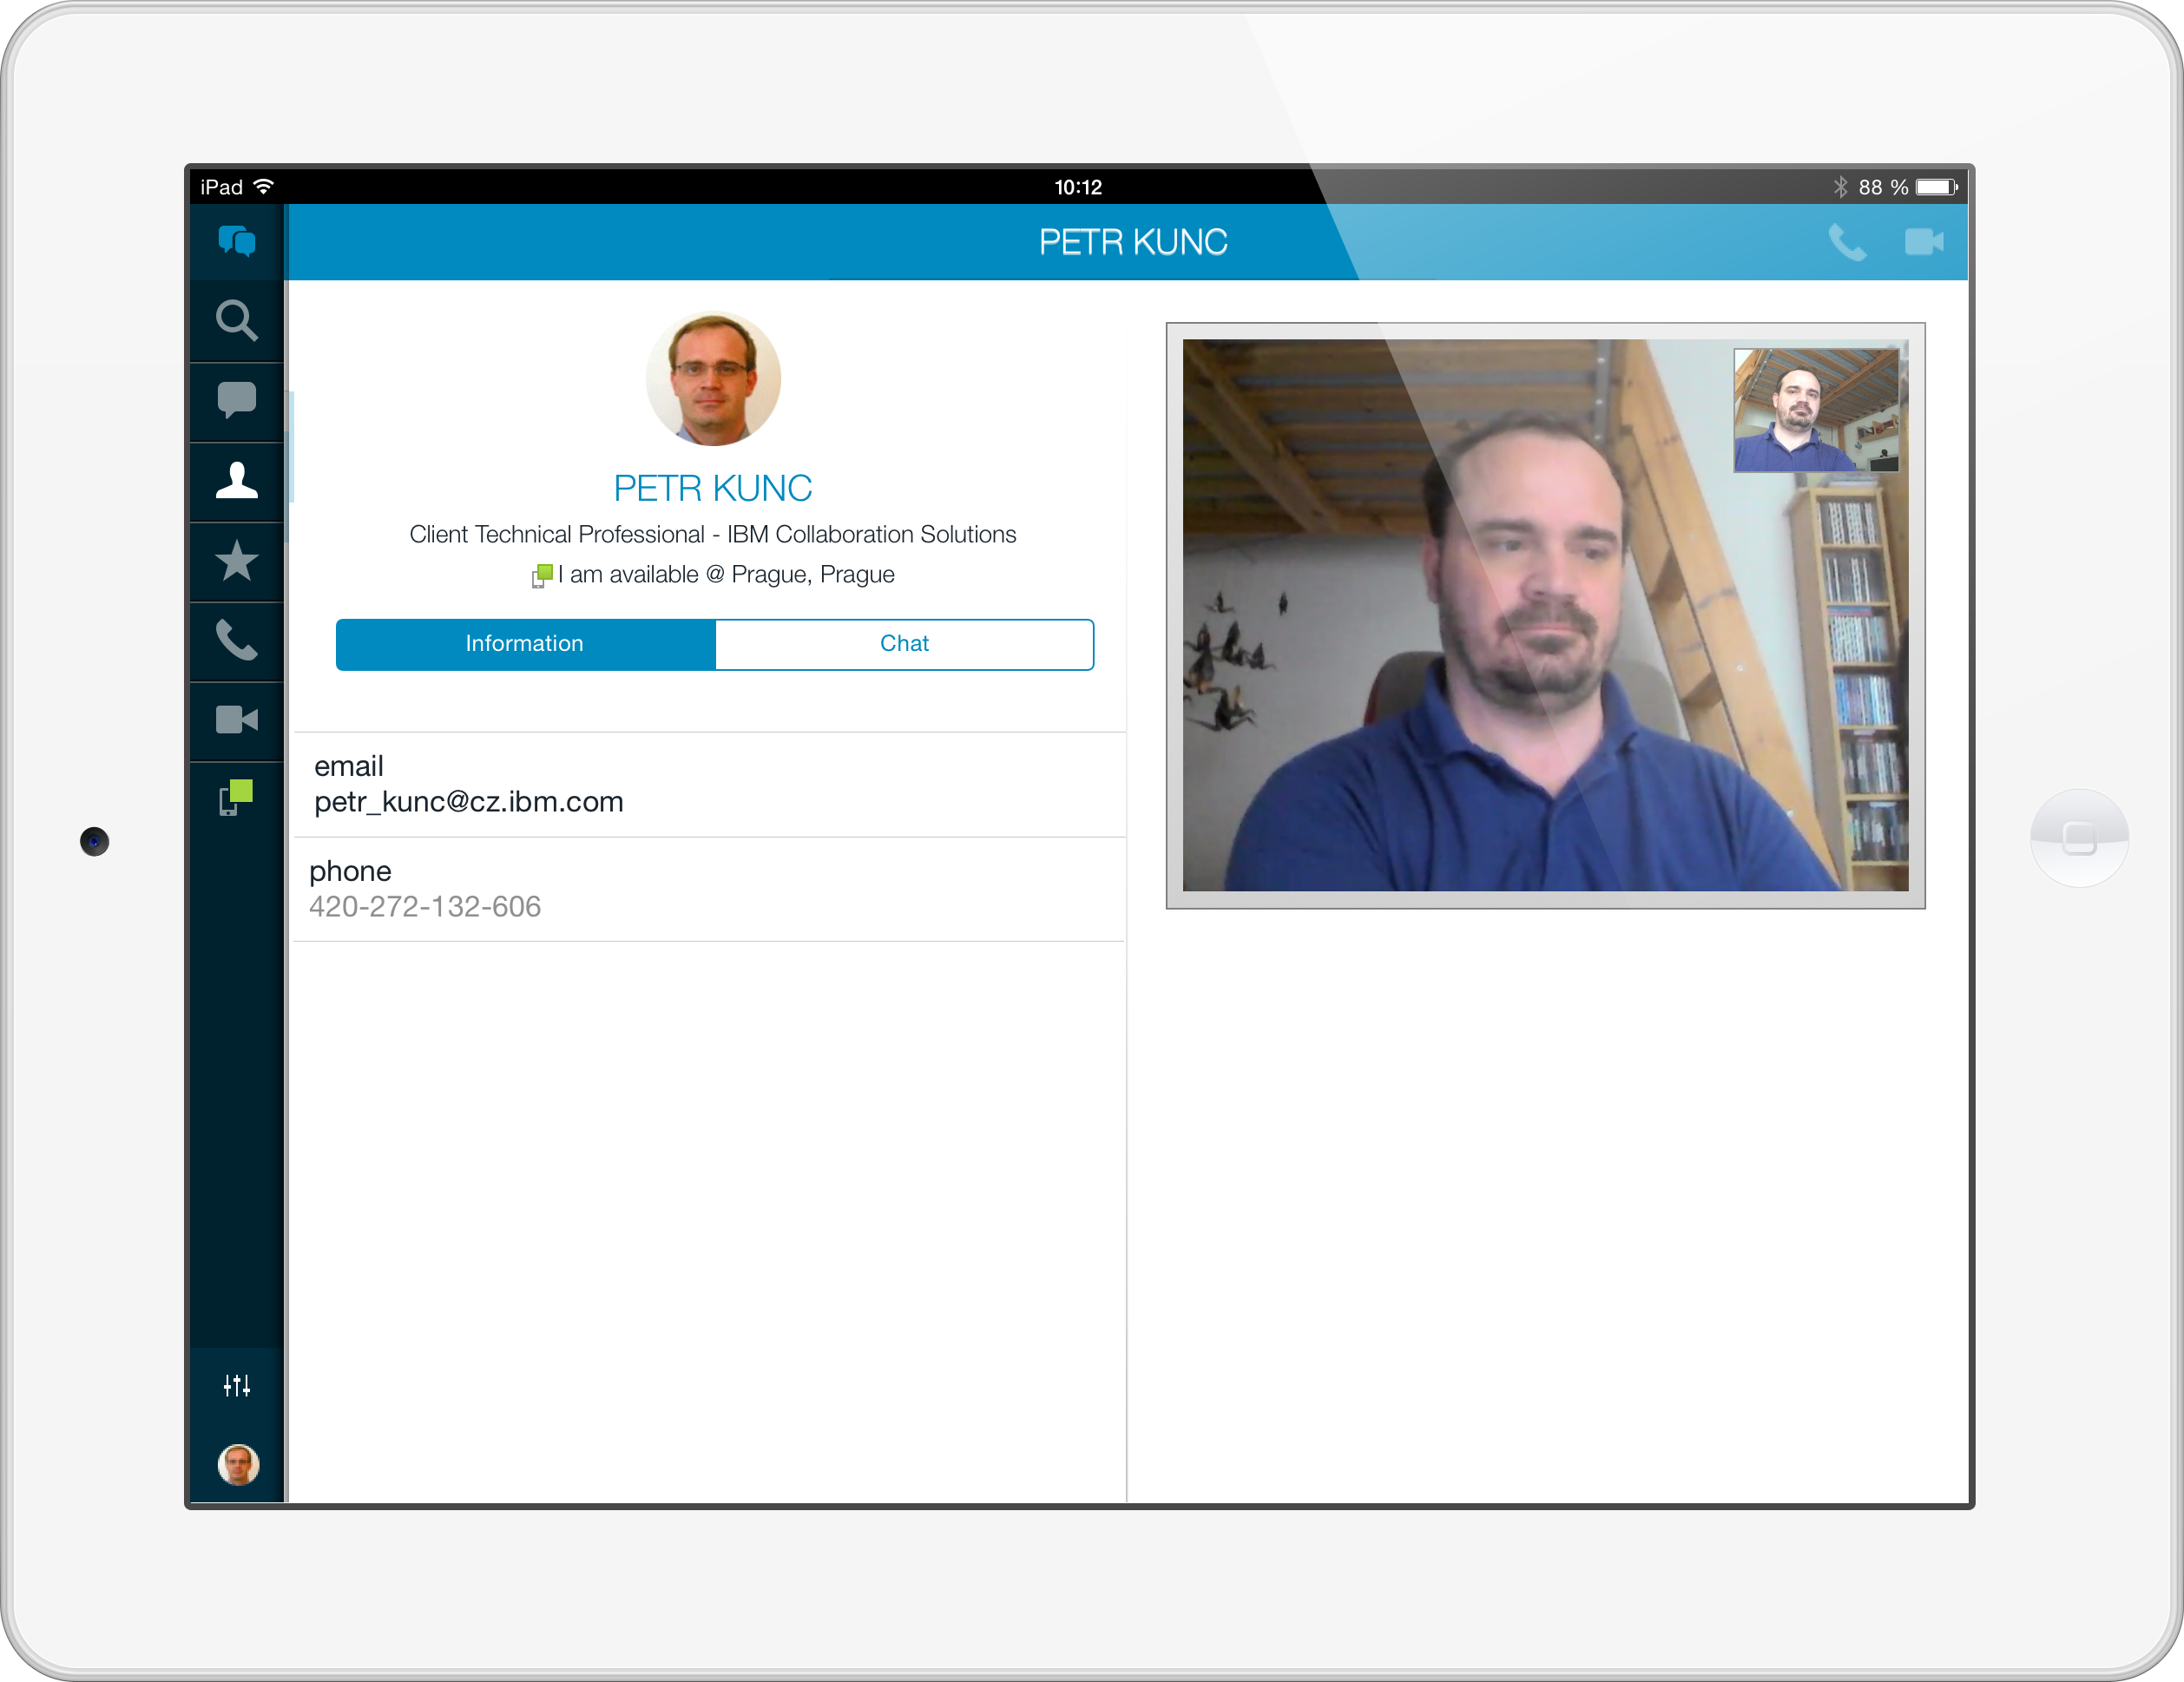 iPad STChat-mobile videocall